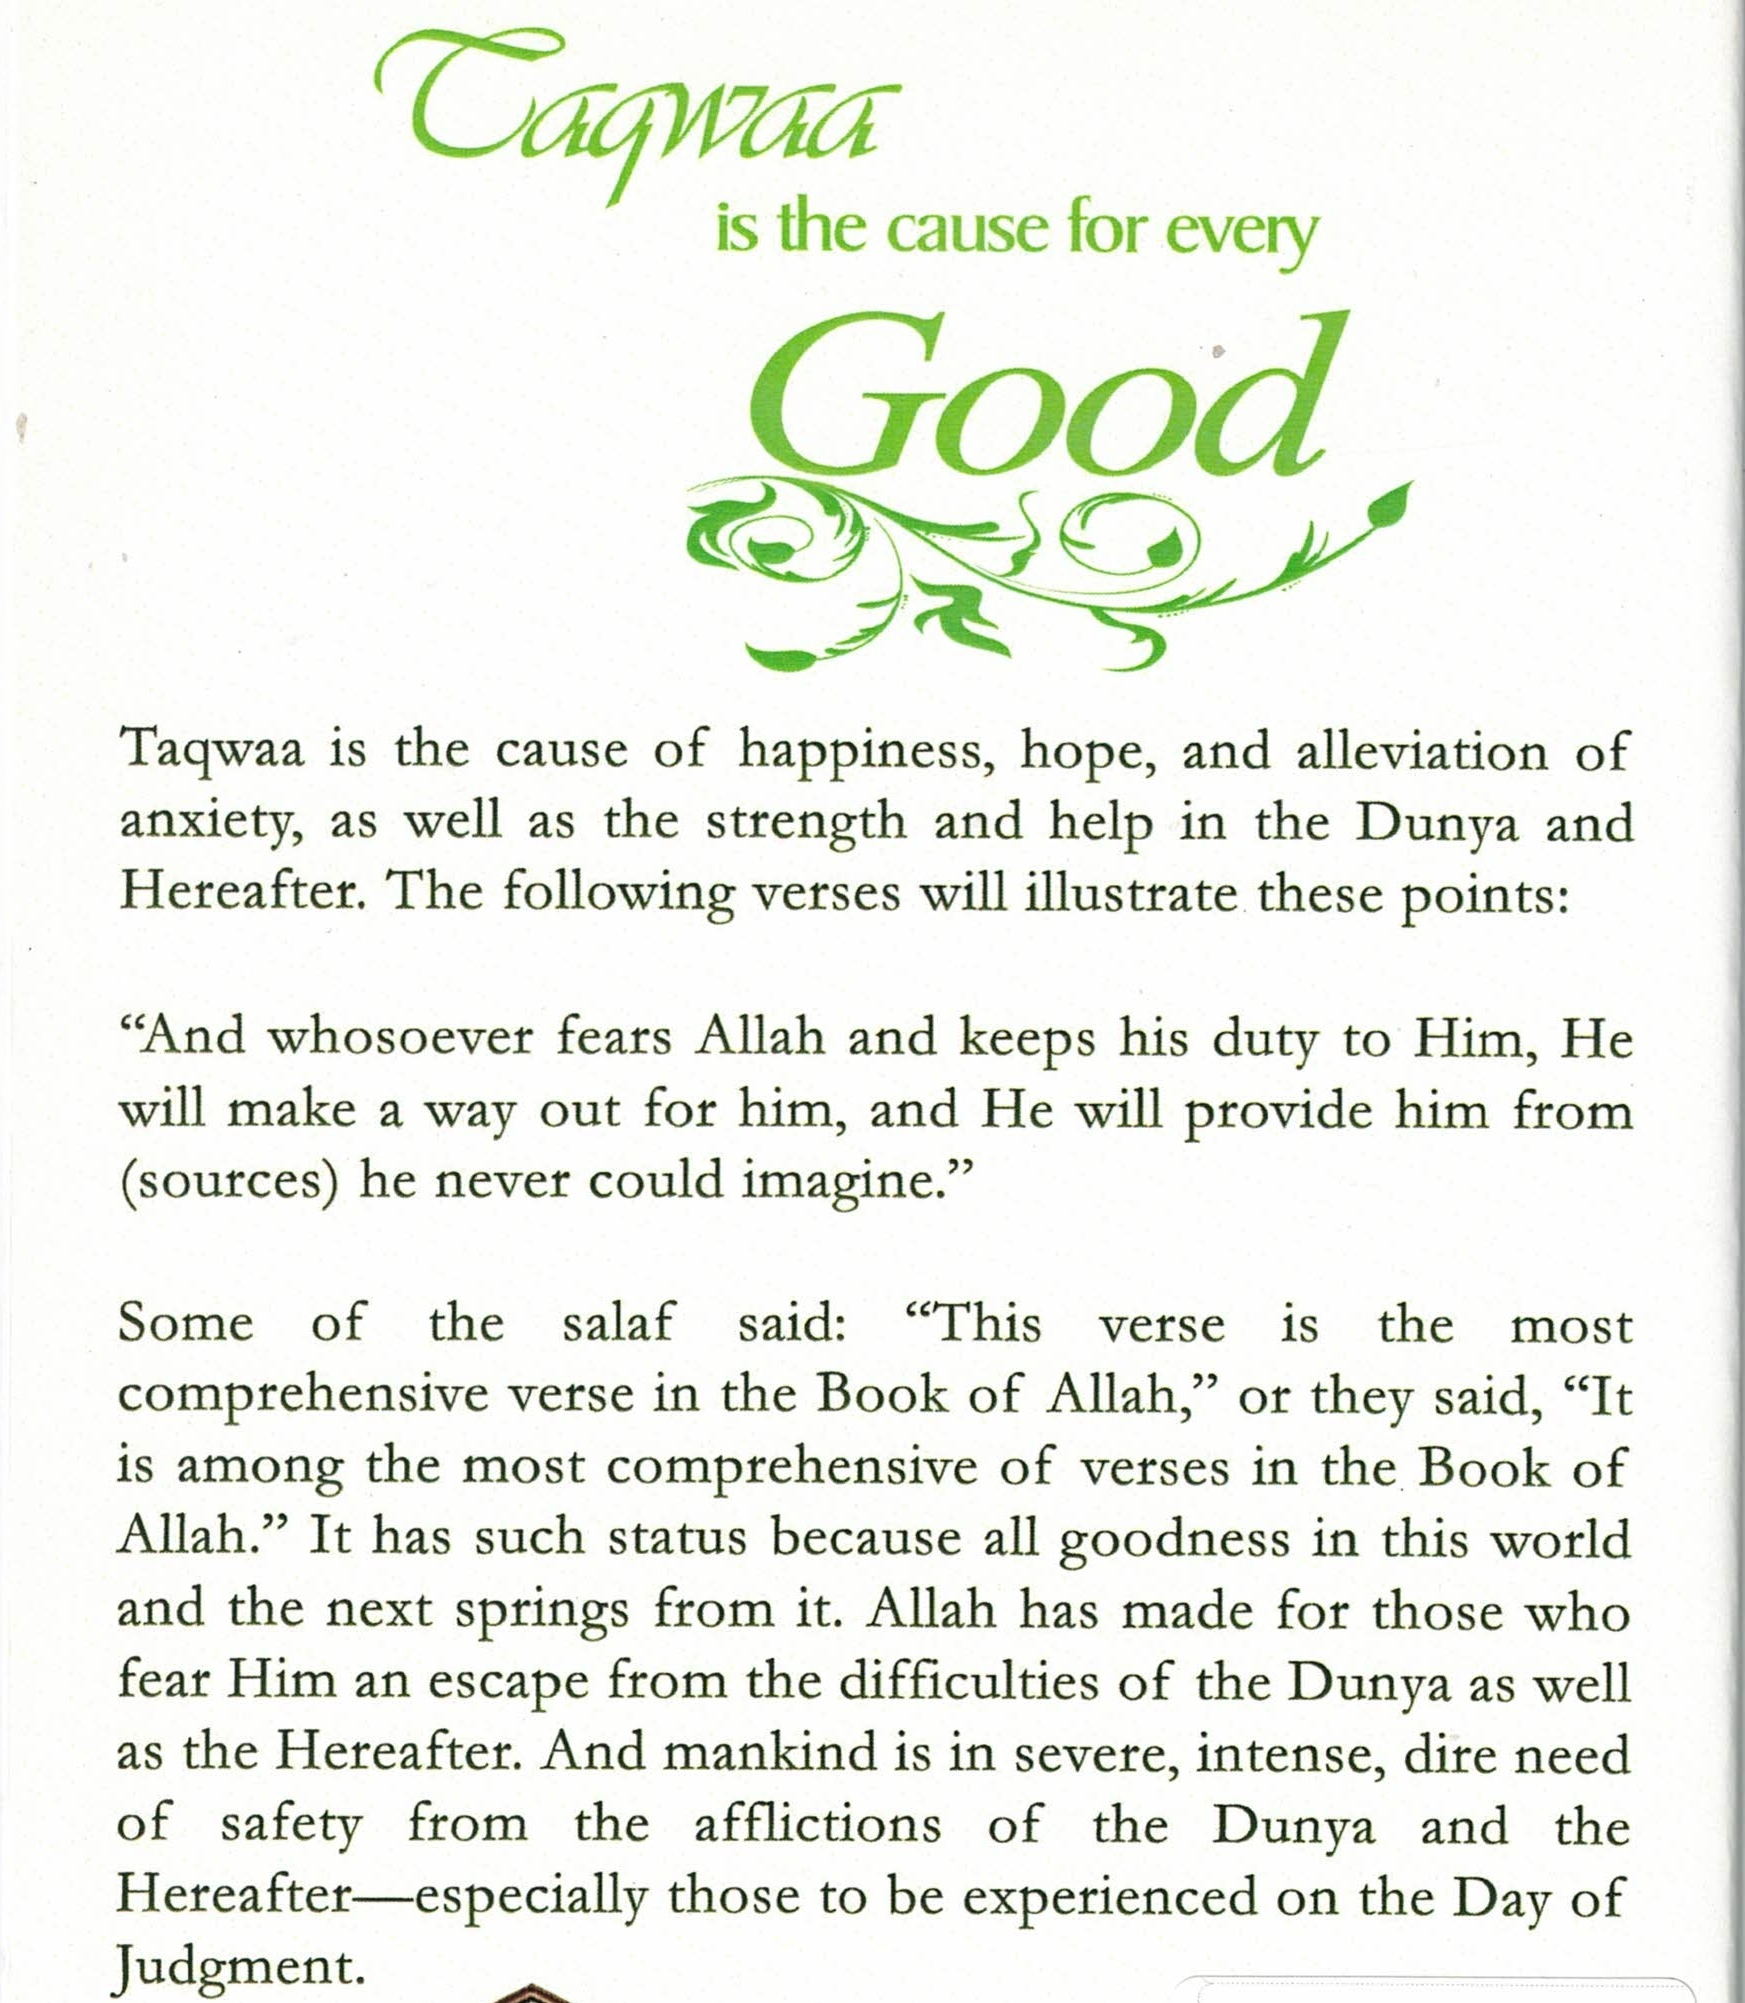 taqwa-is-the-cause-for-every-good-2-copy.jpg